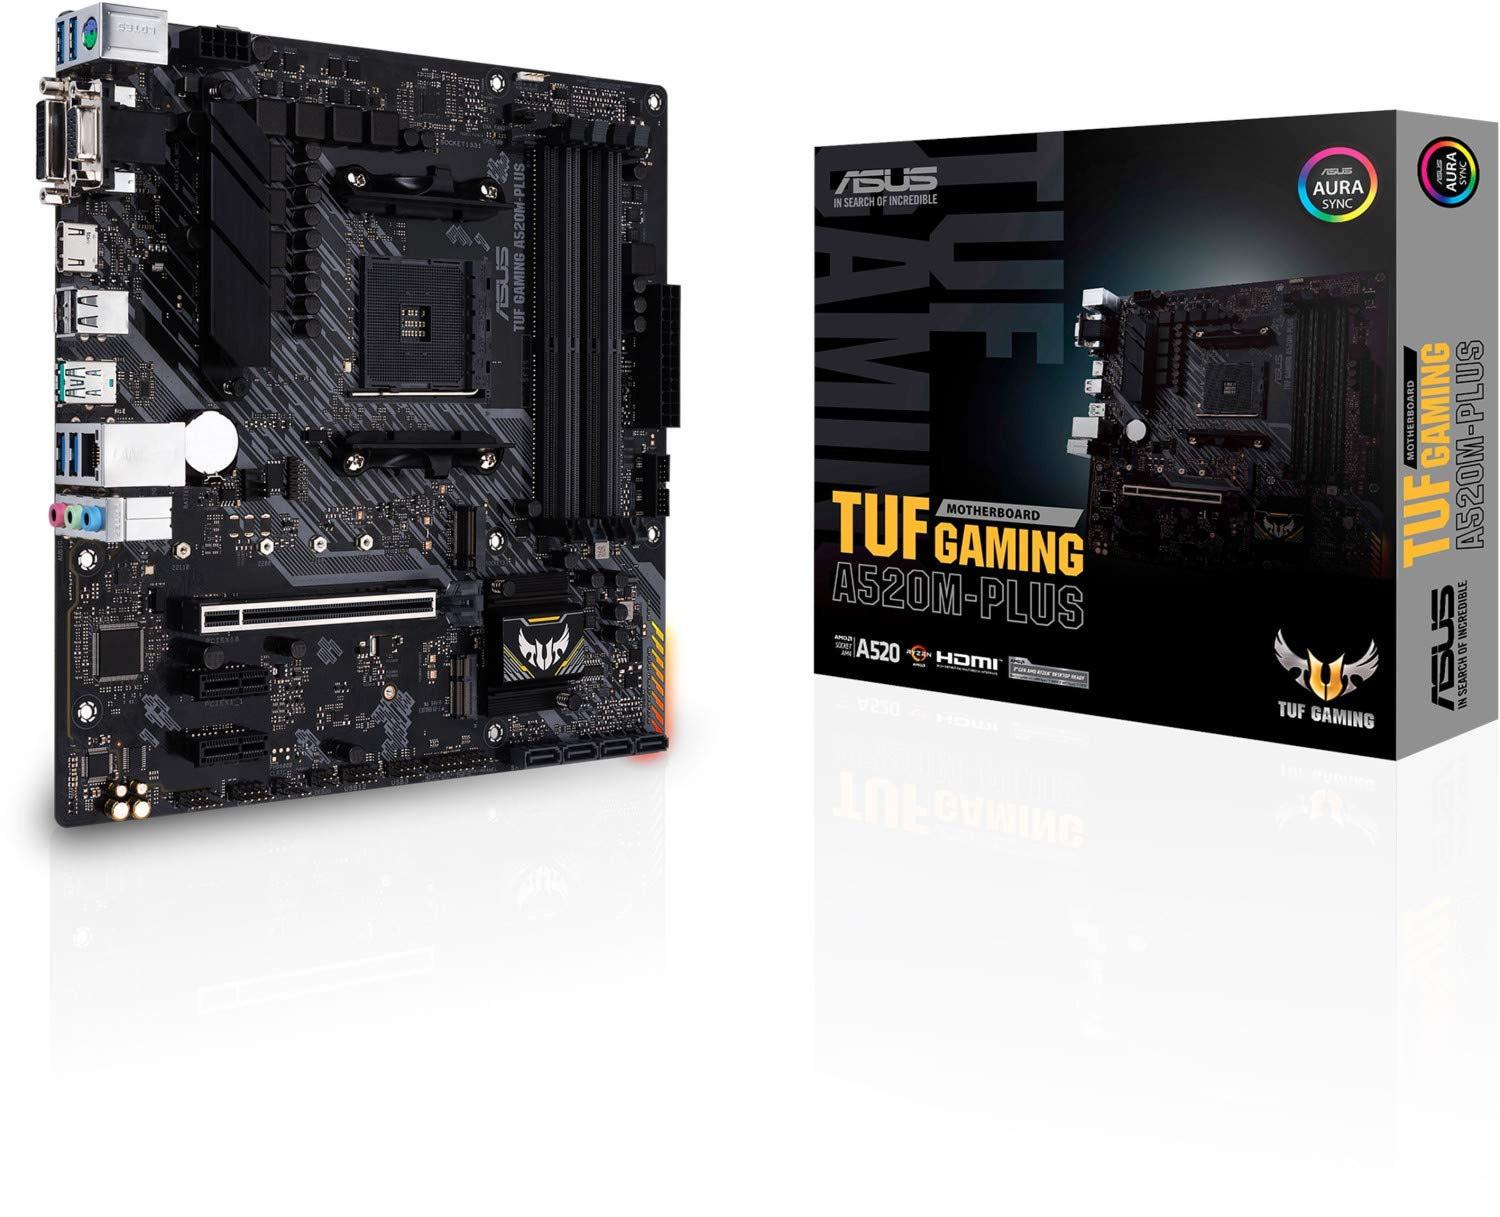 A520 Motherboard